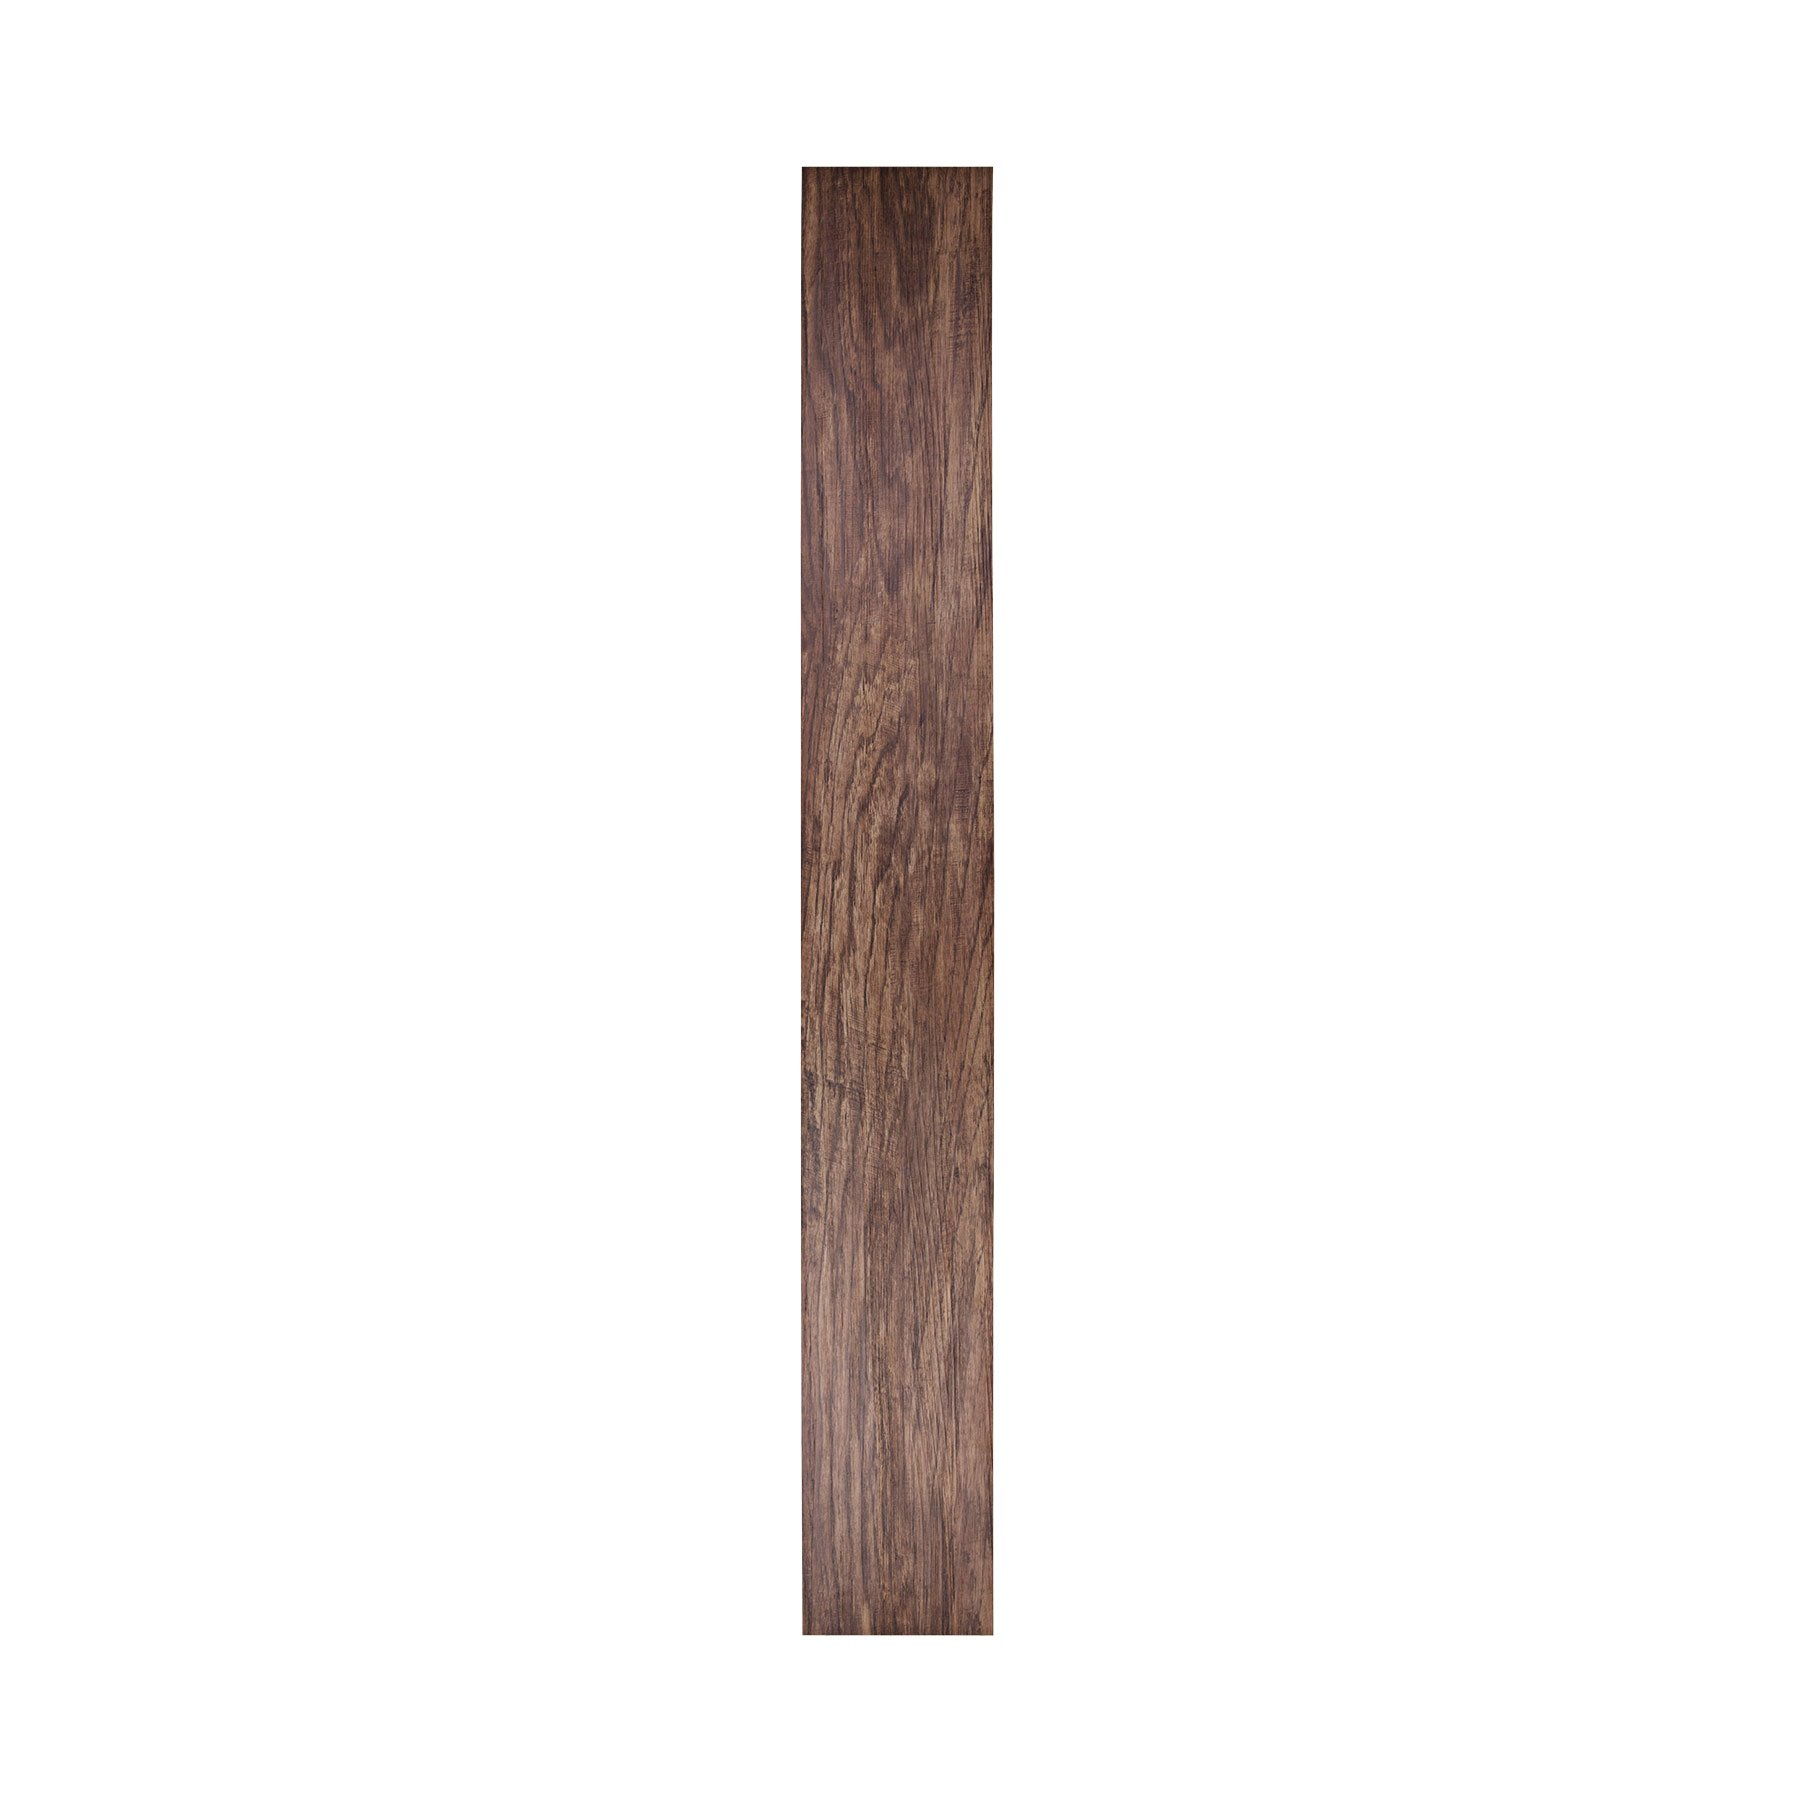 MAYKKE Heirloom Pine 47 Sq Ft Vinyl Plank Flooring 48x6 inch | Resembles Hardwood, Or Use for Wood Accent Wall | Pack of 24, Easy Install JHA1000102 by Maykke (Image #2)